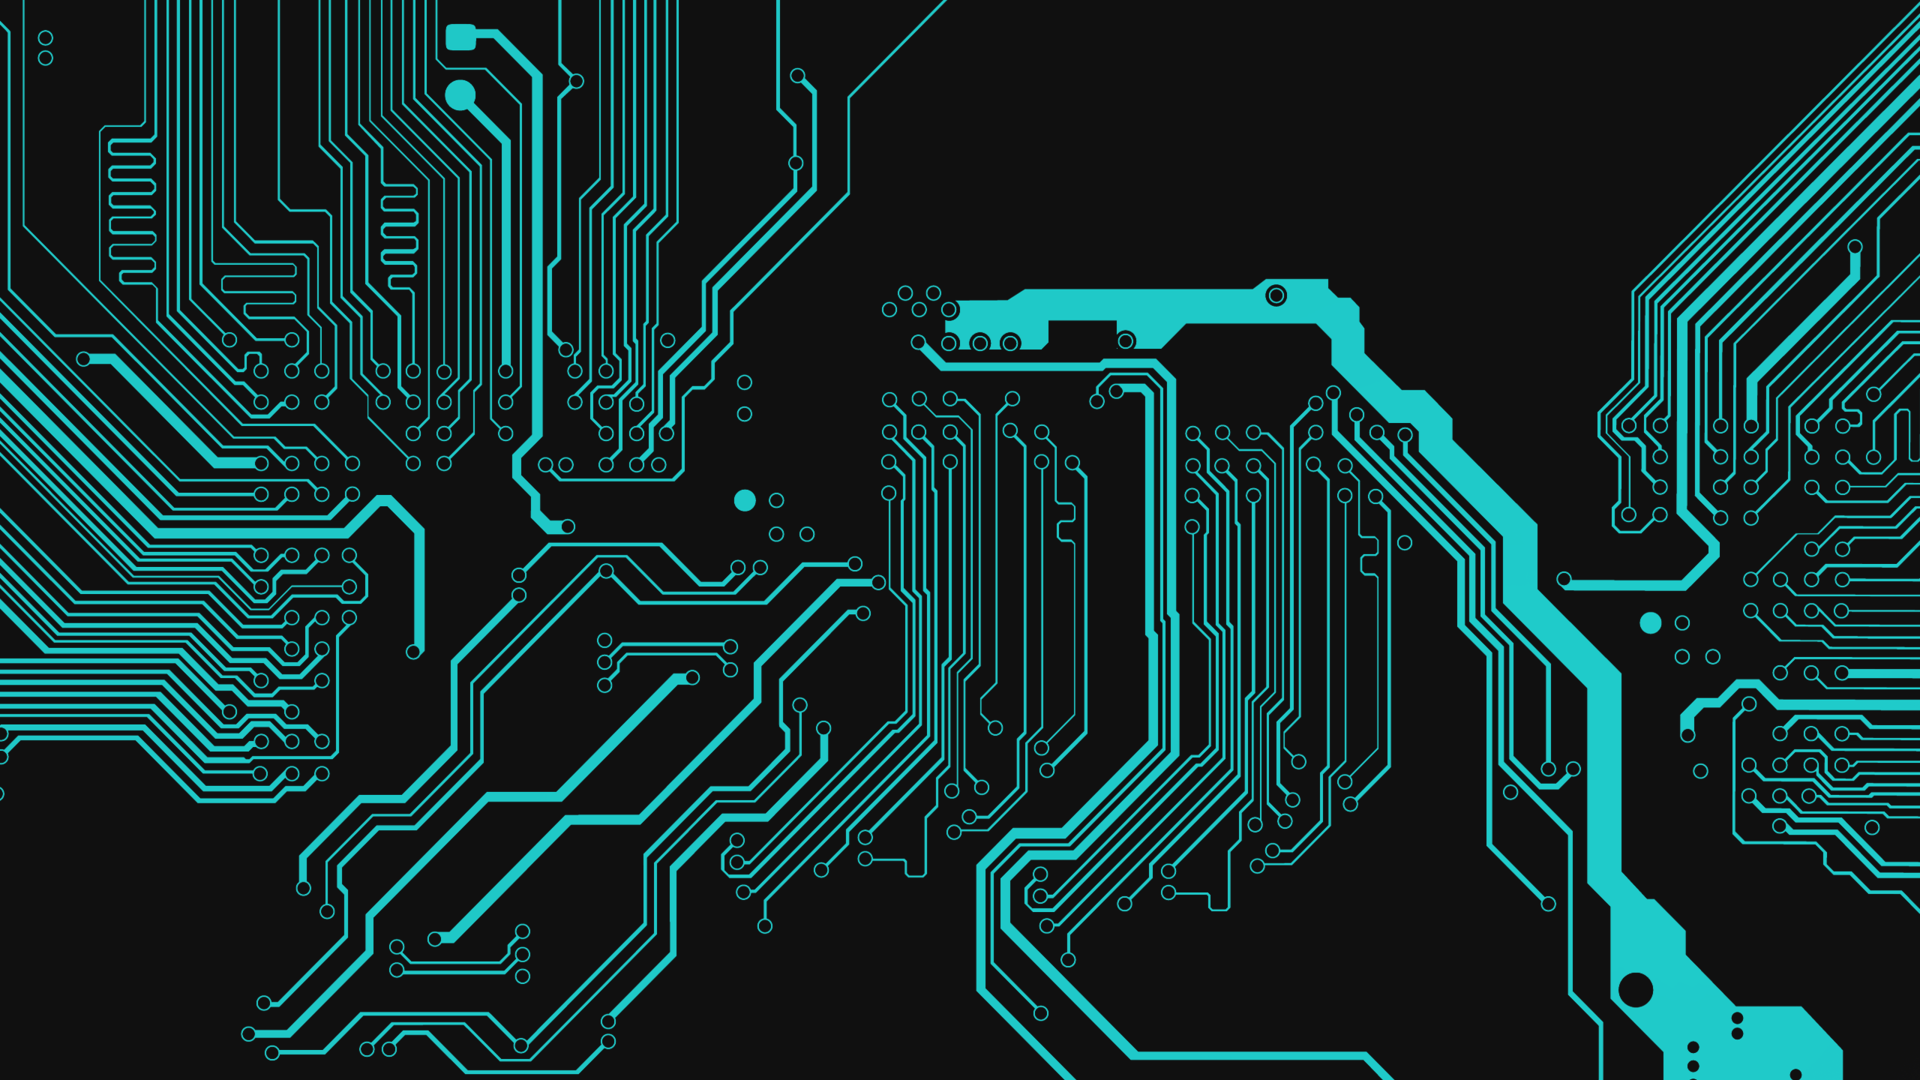 General 1920x1080 digital art black dark background circuit electronic abstract minimalism technology PCB turquoise simple cyan circuitry